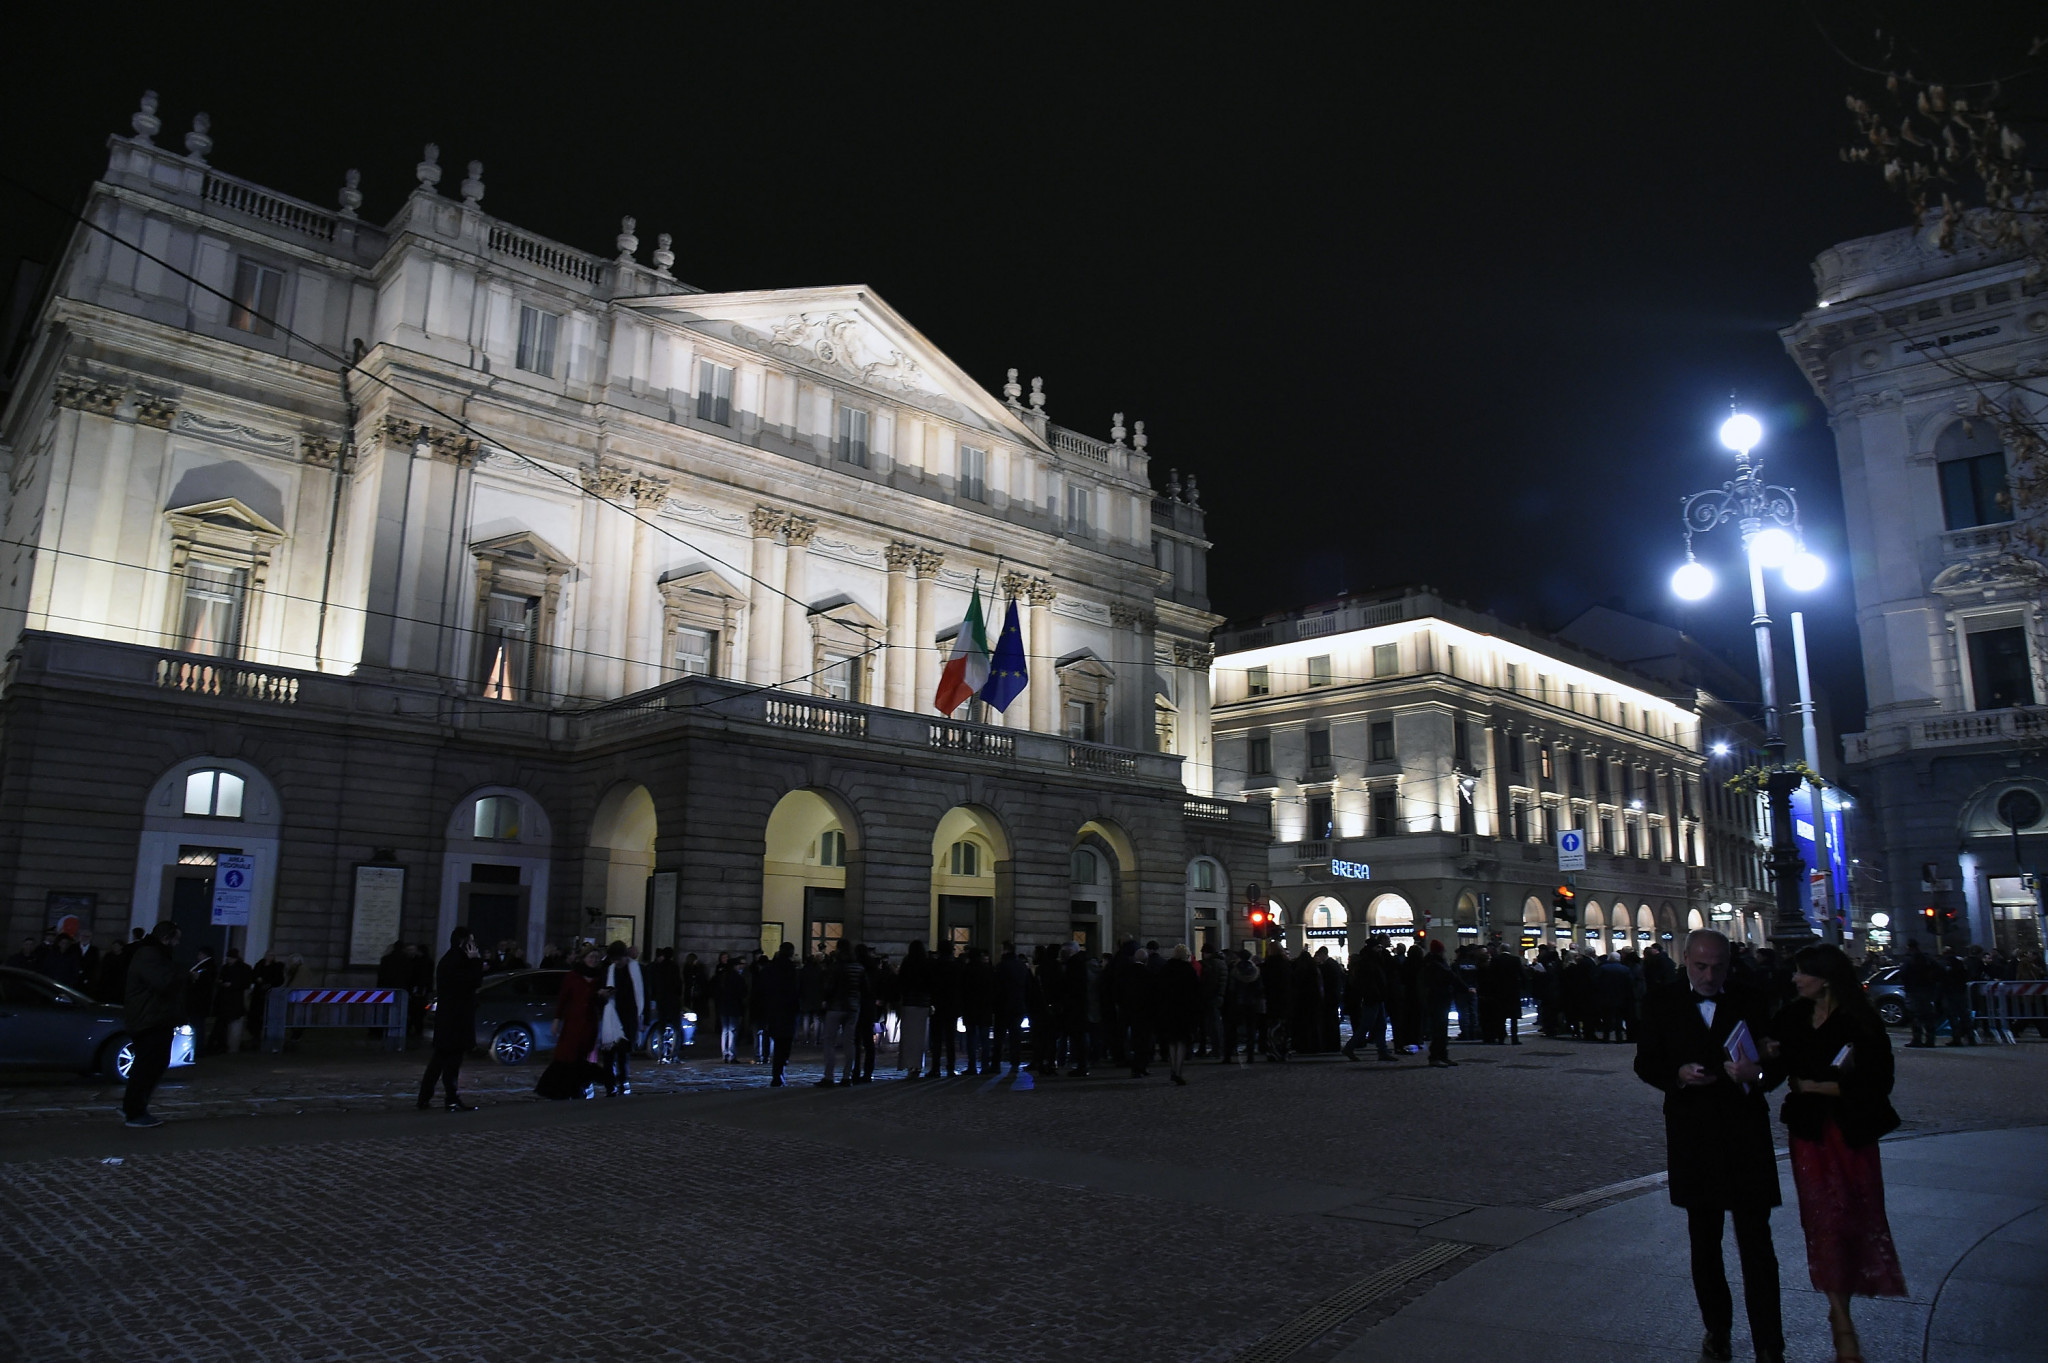 The 2019 Best FIFA Football Awards ceremony will be held at the Teatro alla Scala in Milan ©Getty Images